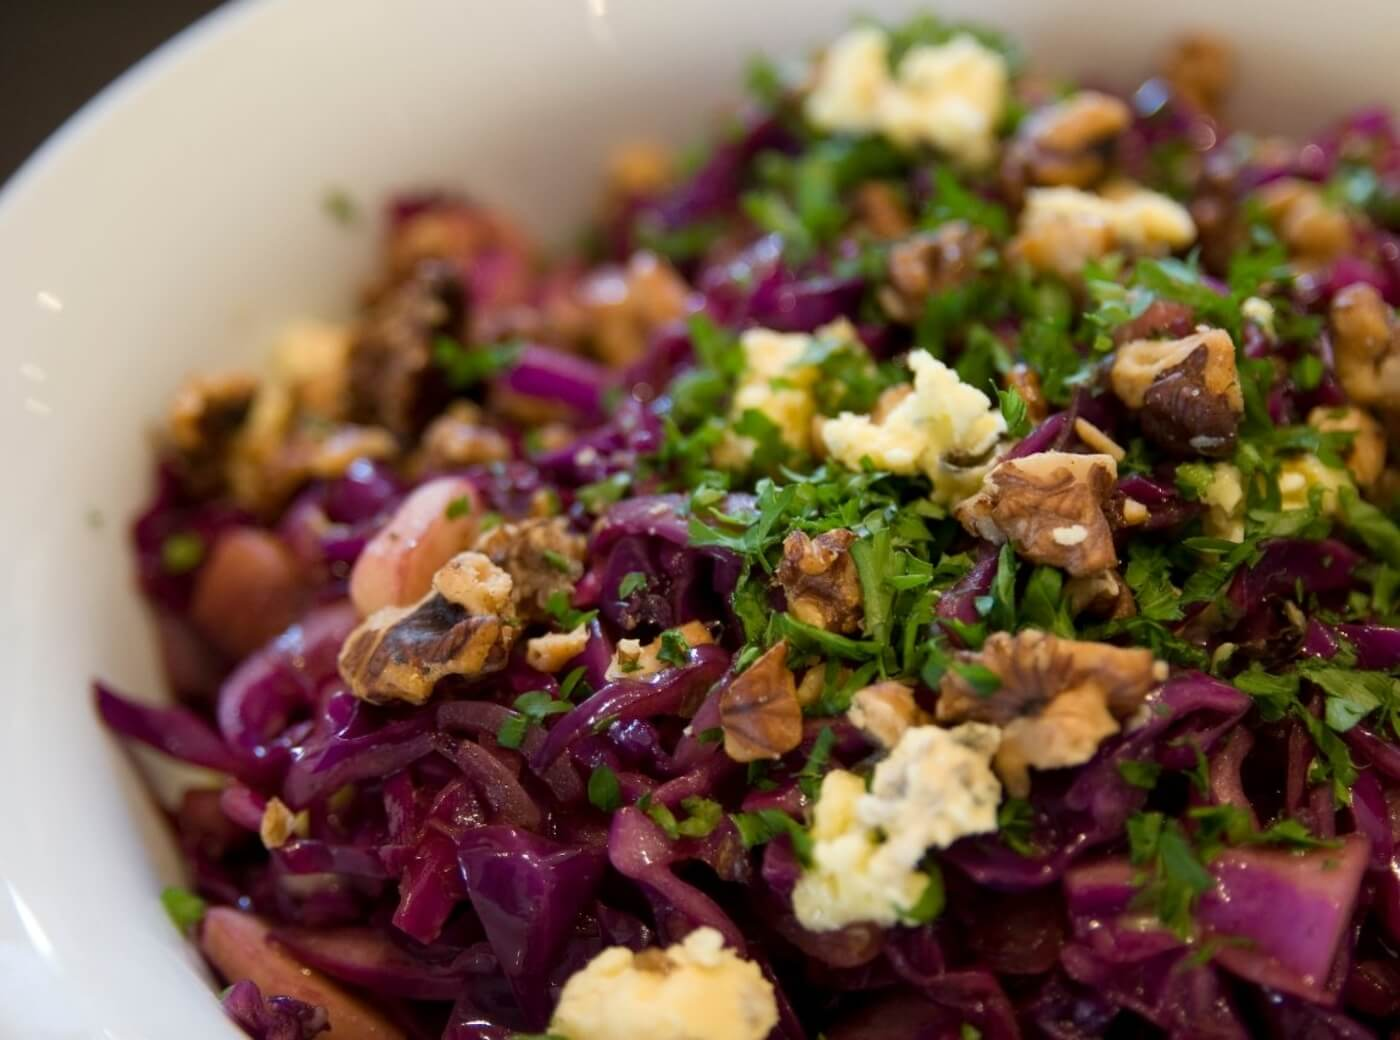 Warm Red Cabbage Salad With Toasted Walnuts And Blue Cheese Riverford